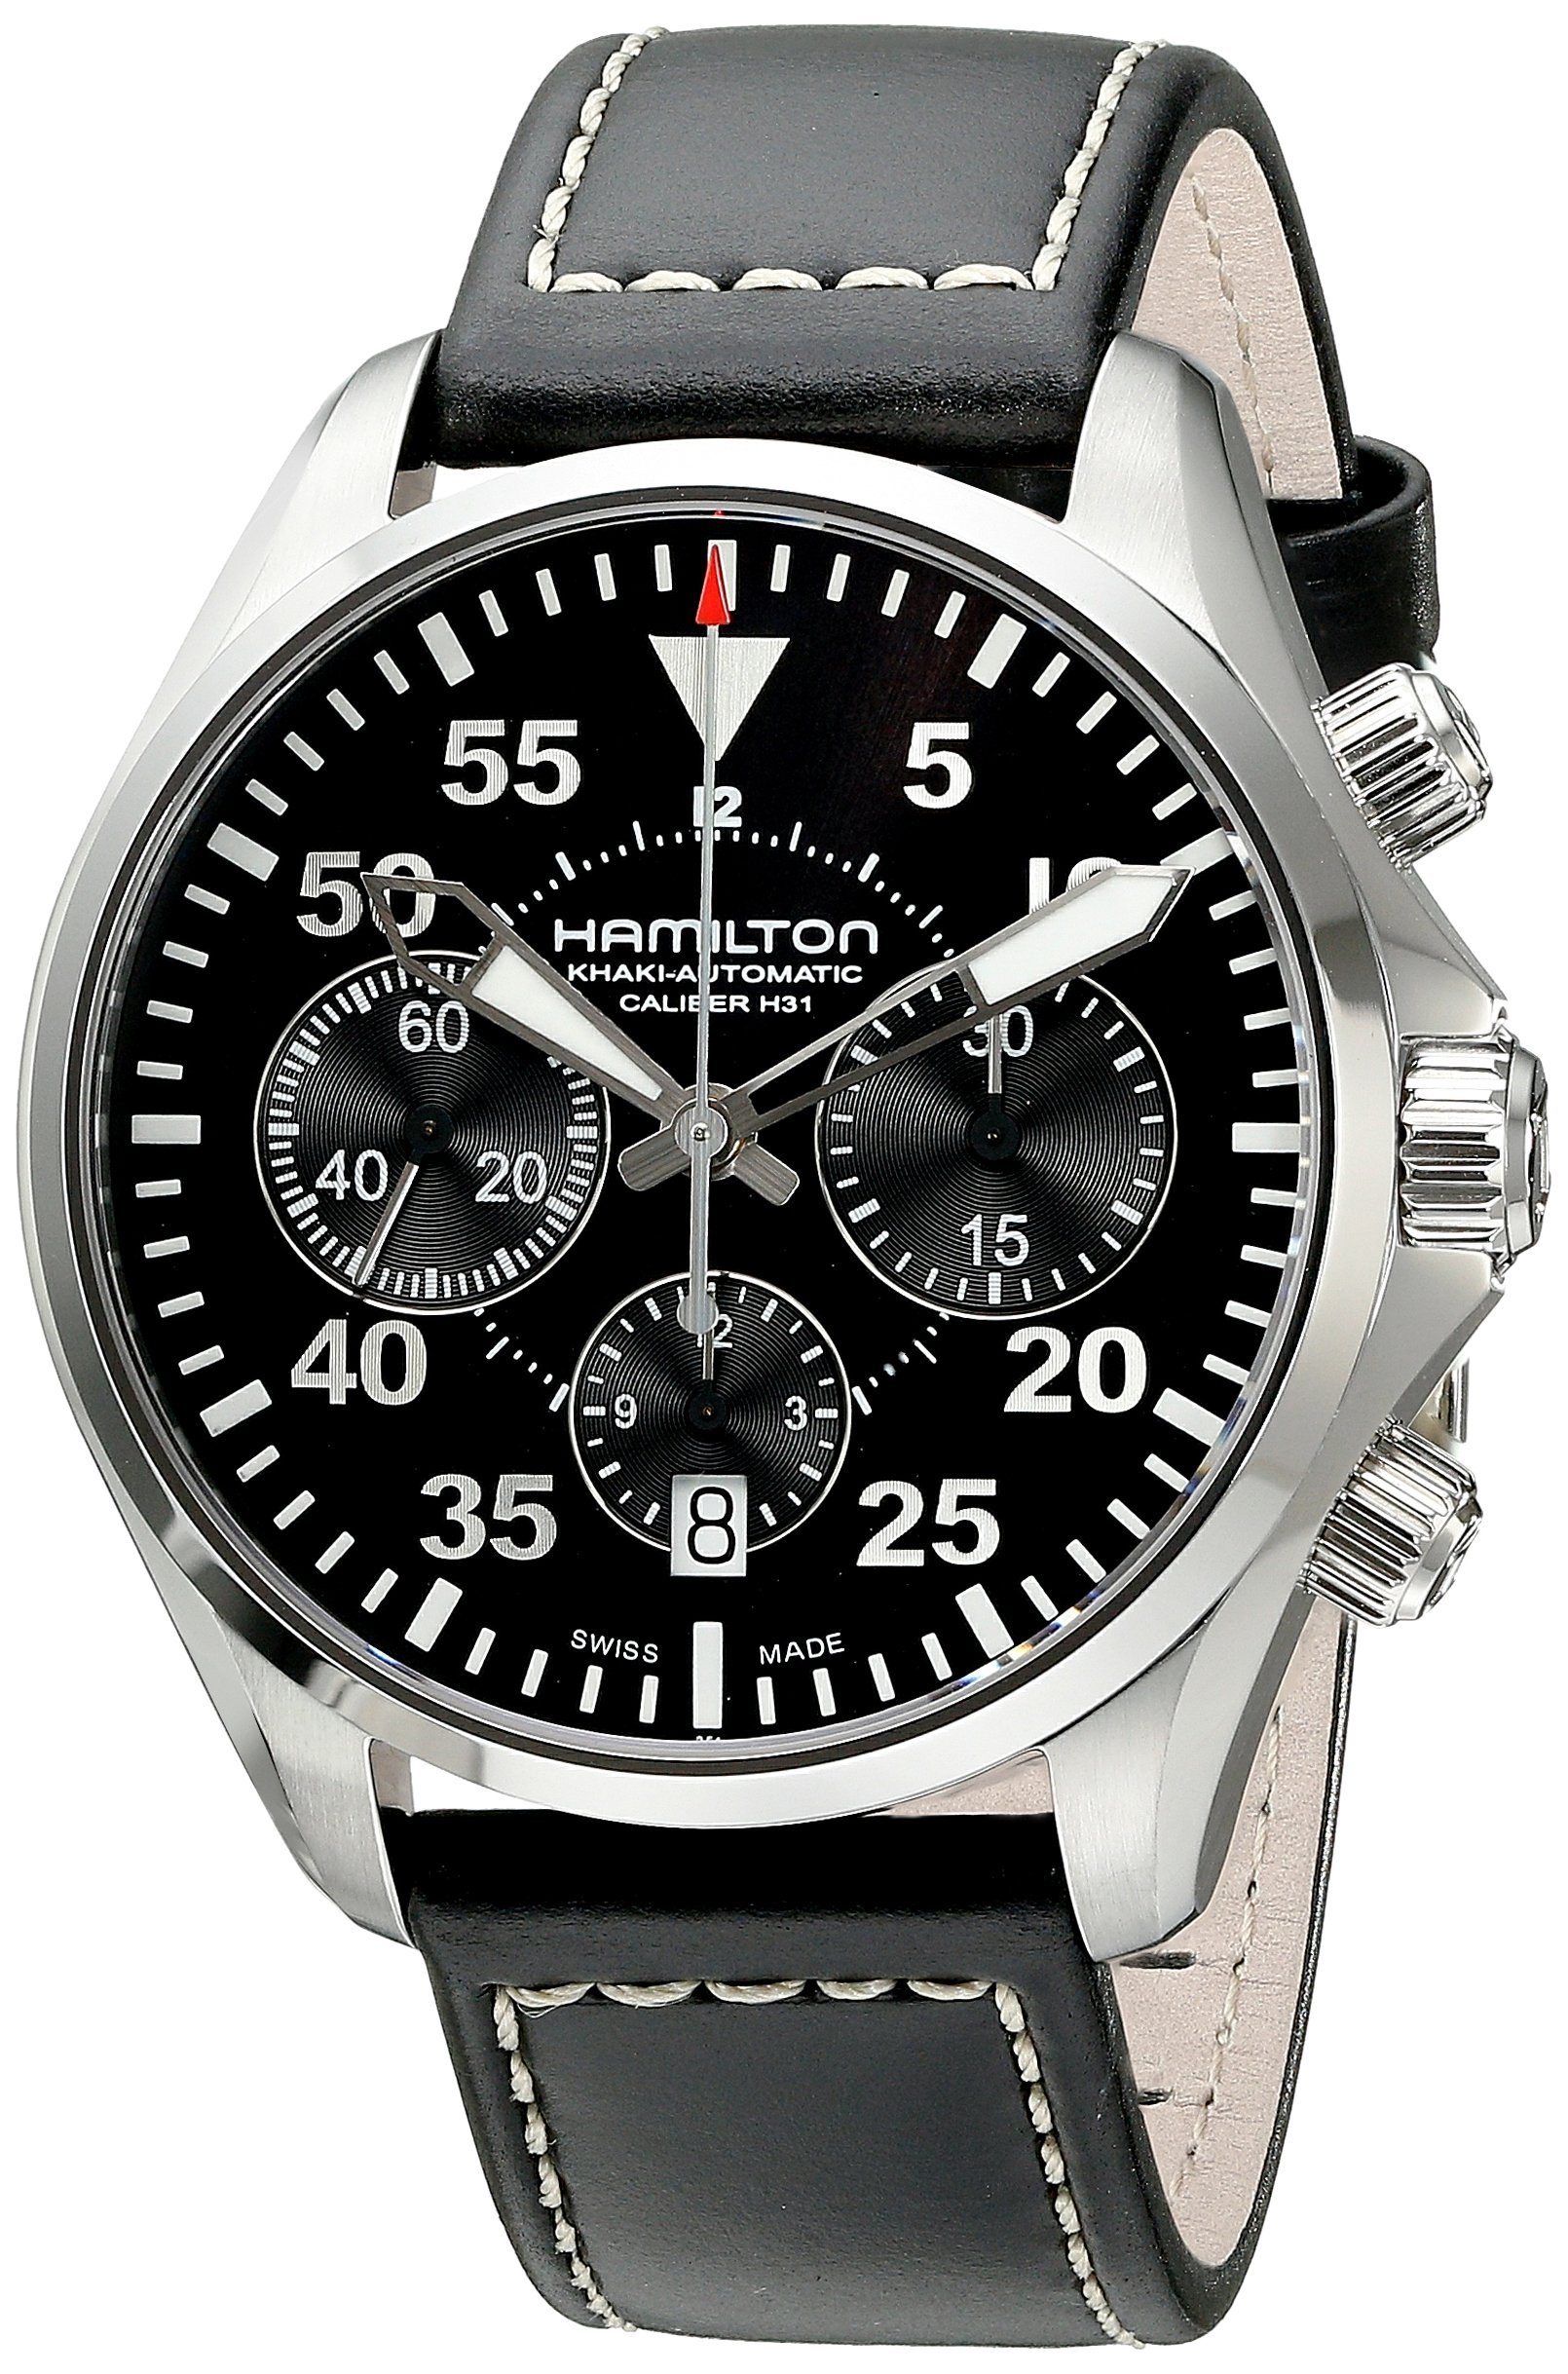 Hamilton Men's H64666735 Khaki Aviation Stainless Steel Automatic Watch with Black Leather Band by Hamilton